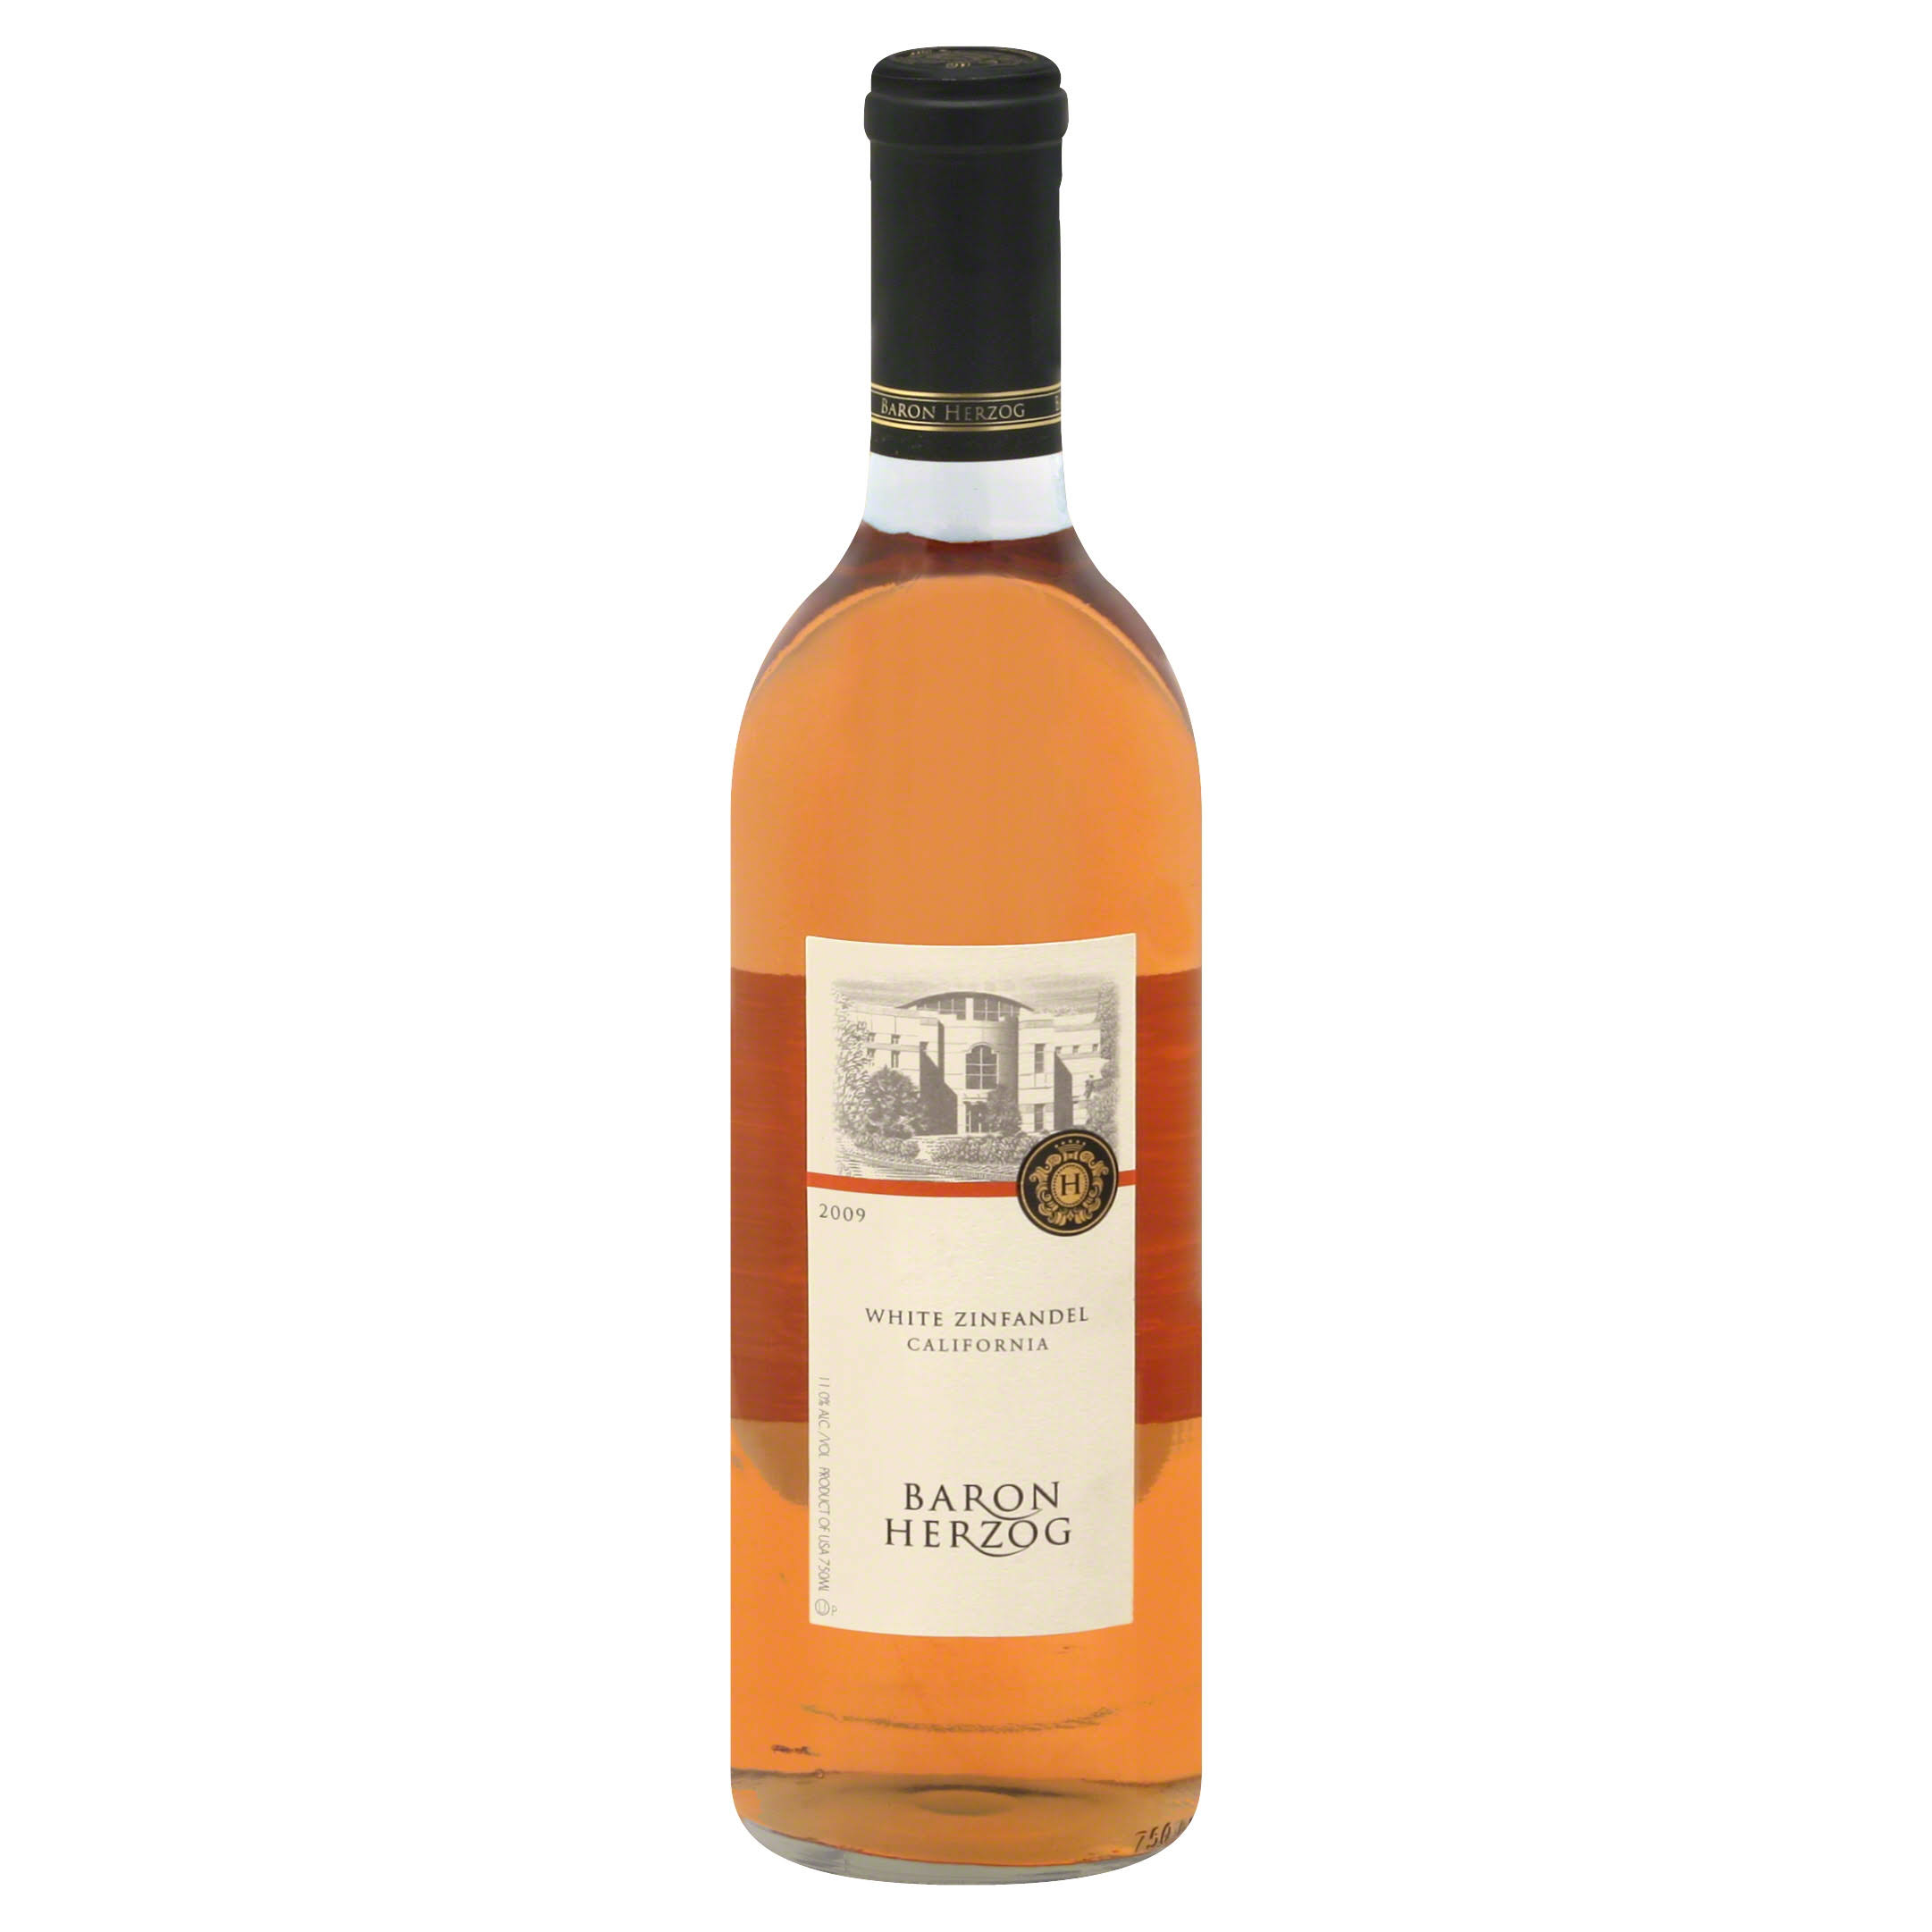 Baron Herzog White Zinfandel, California, 2009 - 750 ml